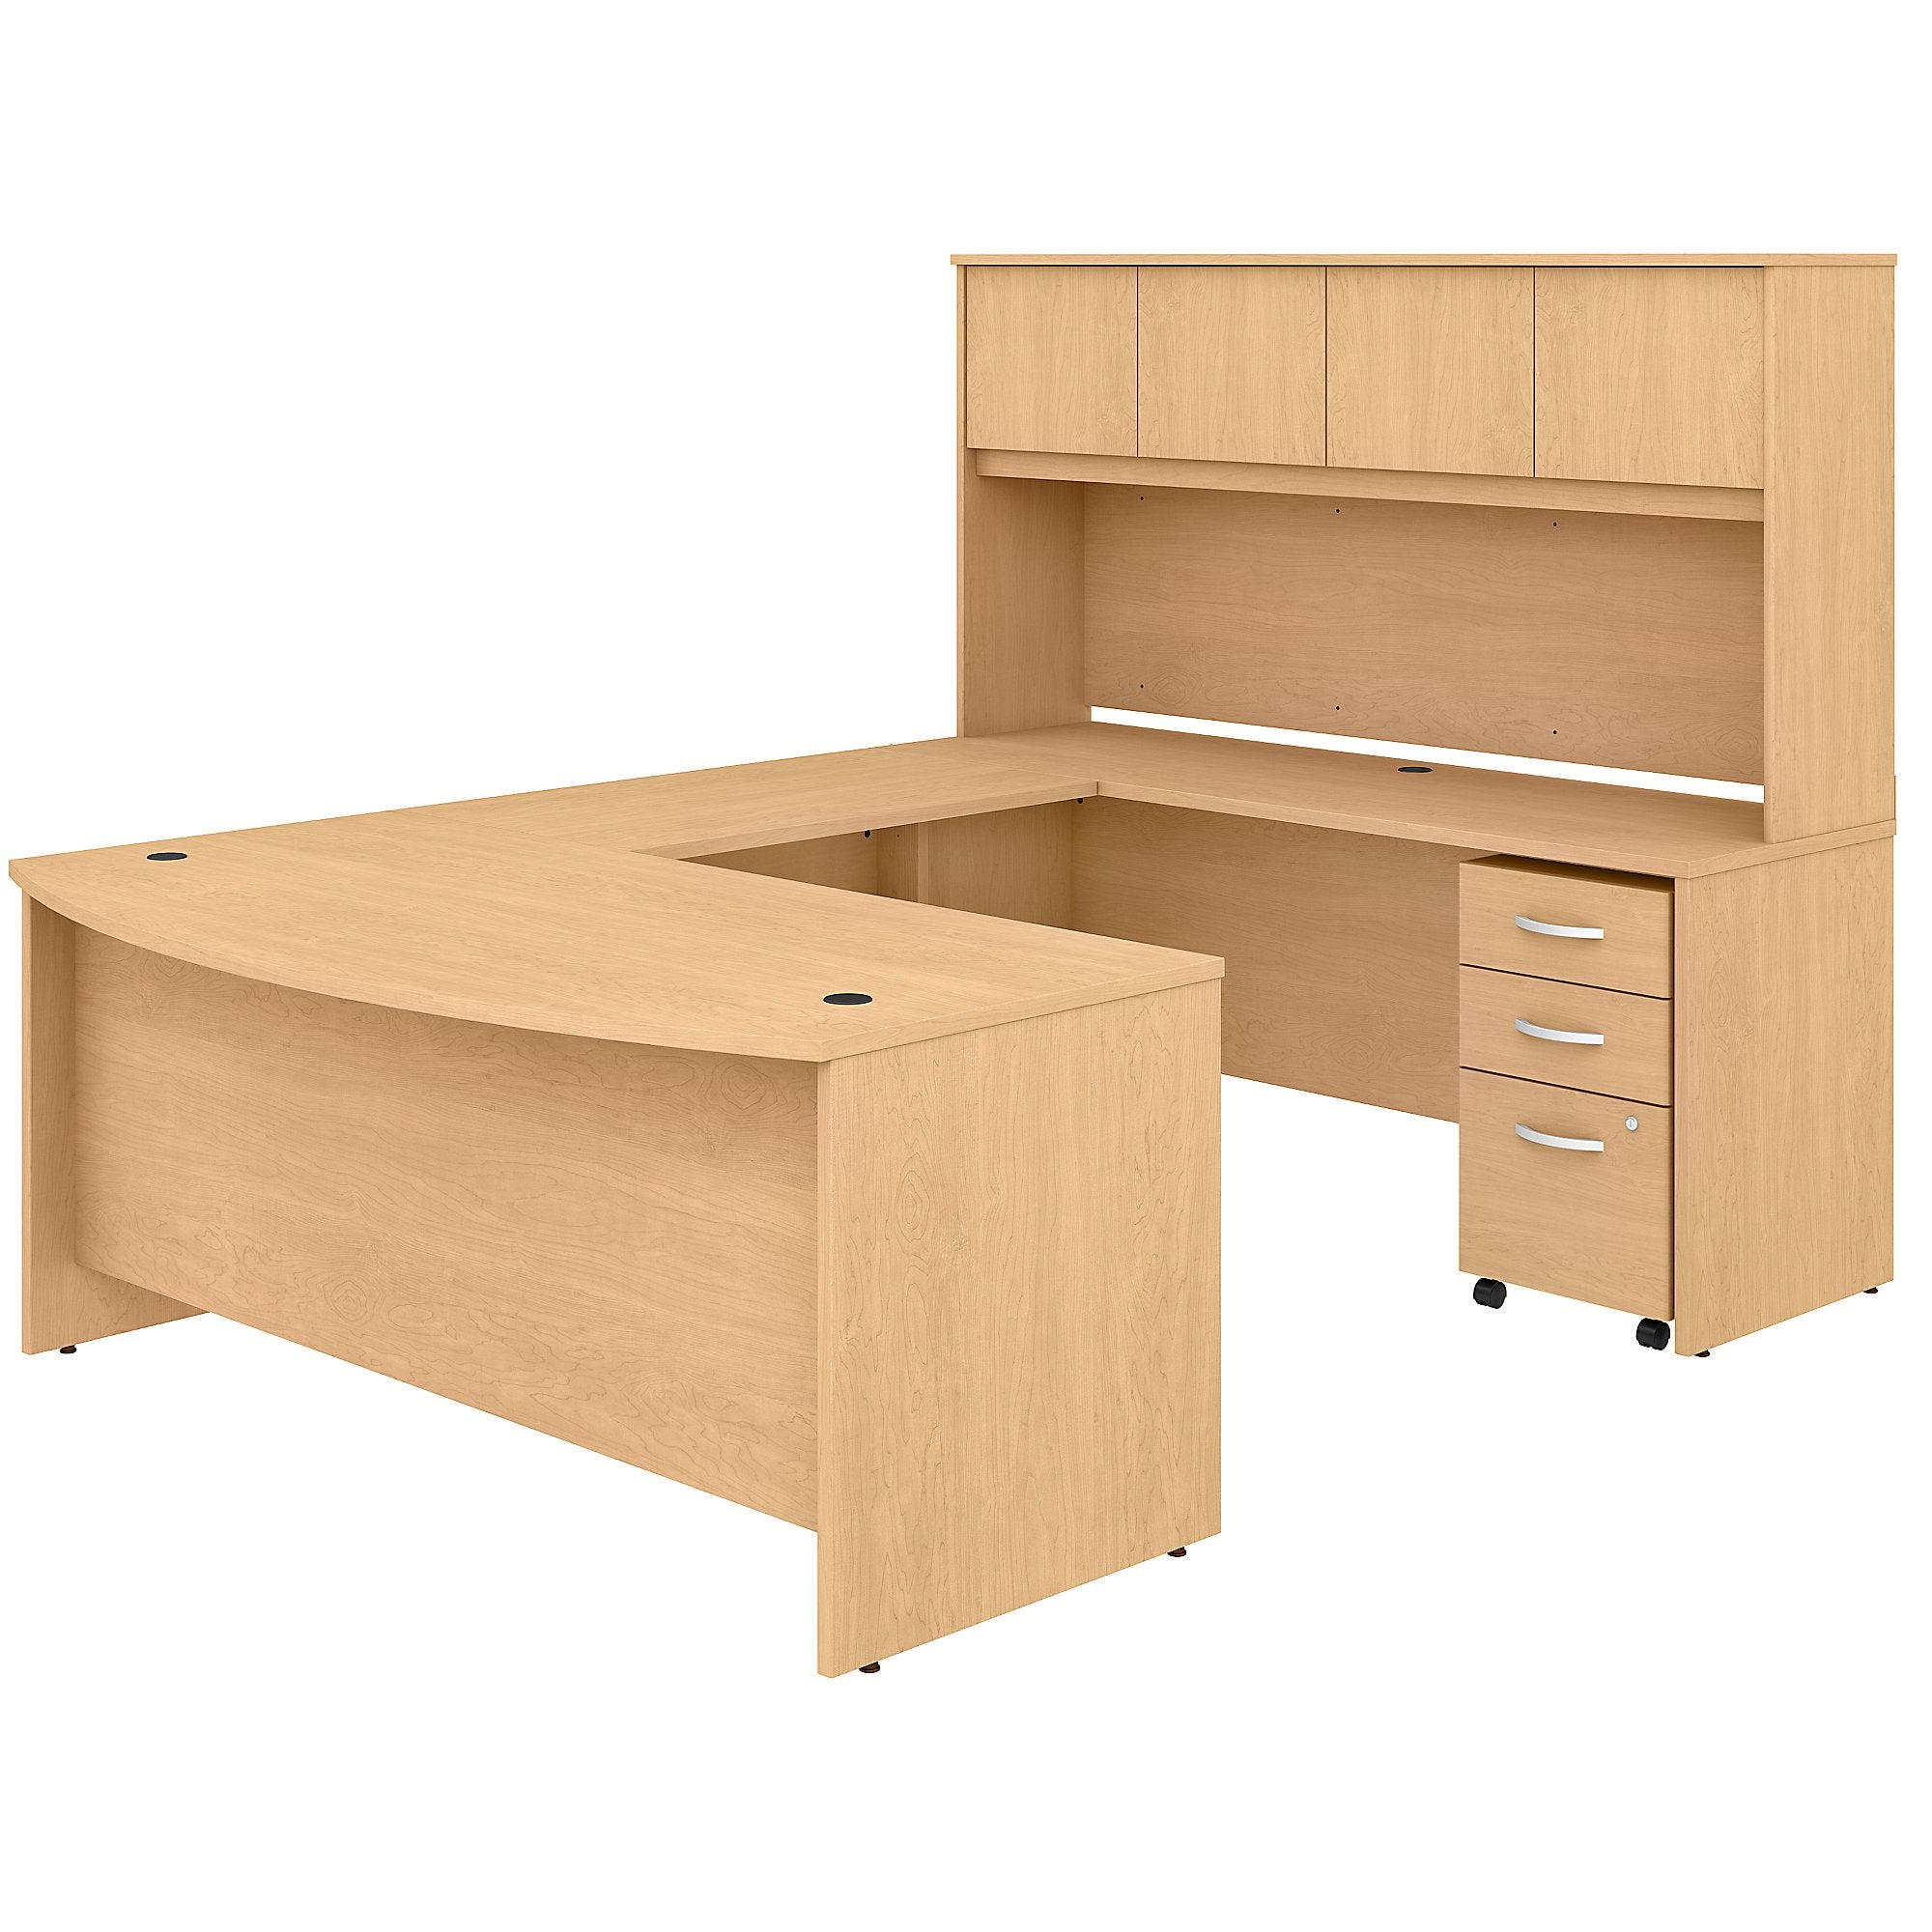 Studio C 72W x 36D U Shaped Desk with Hutch & Mobile File Cabinet